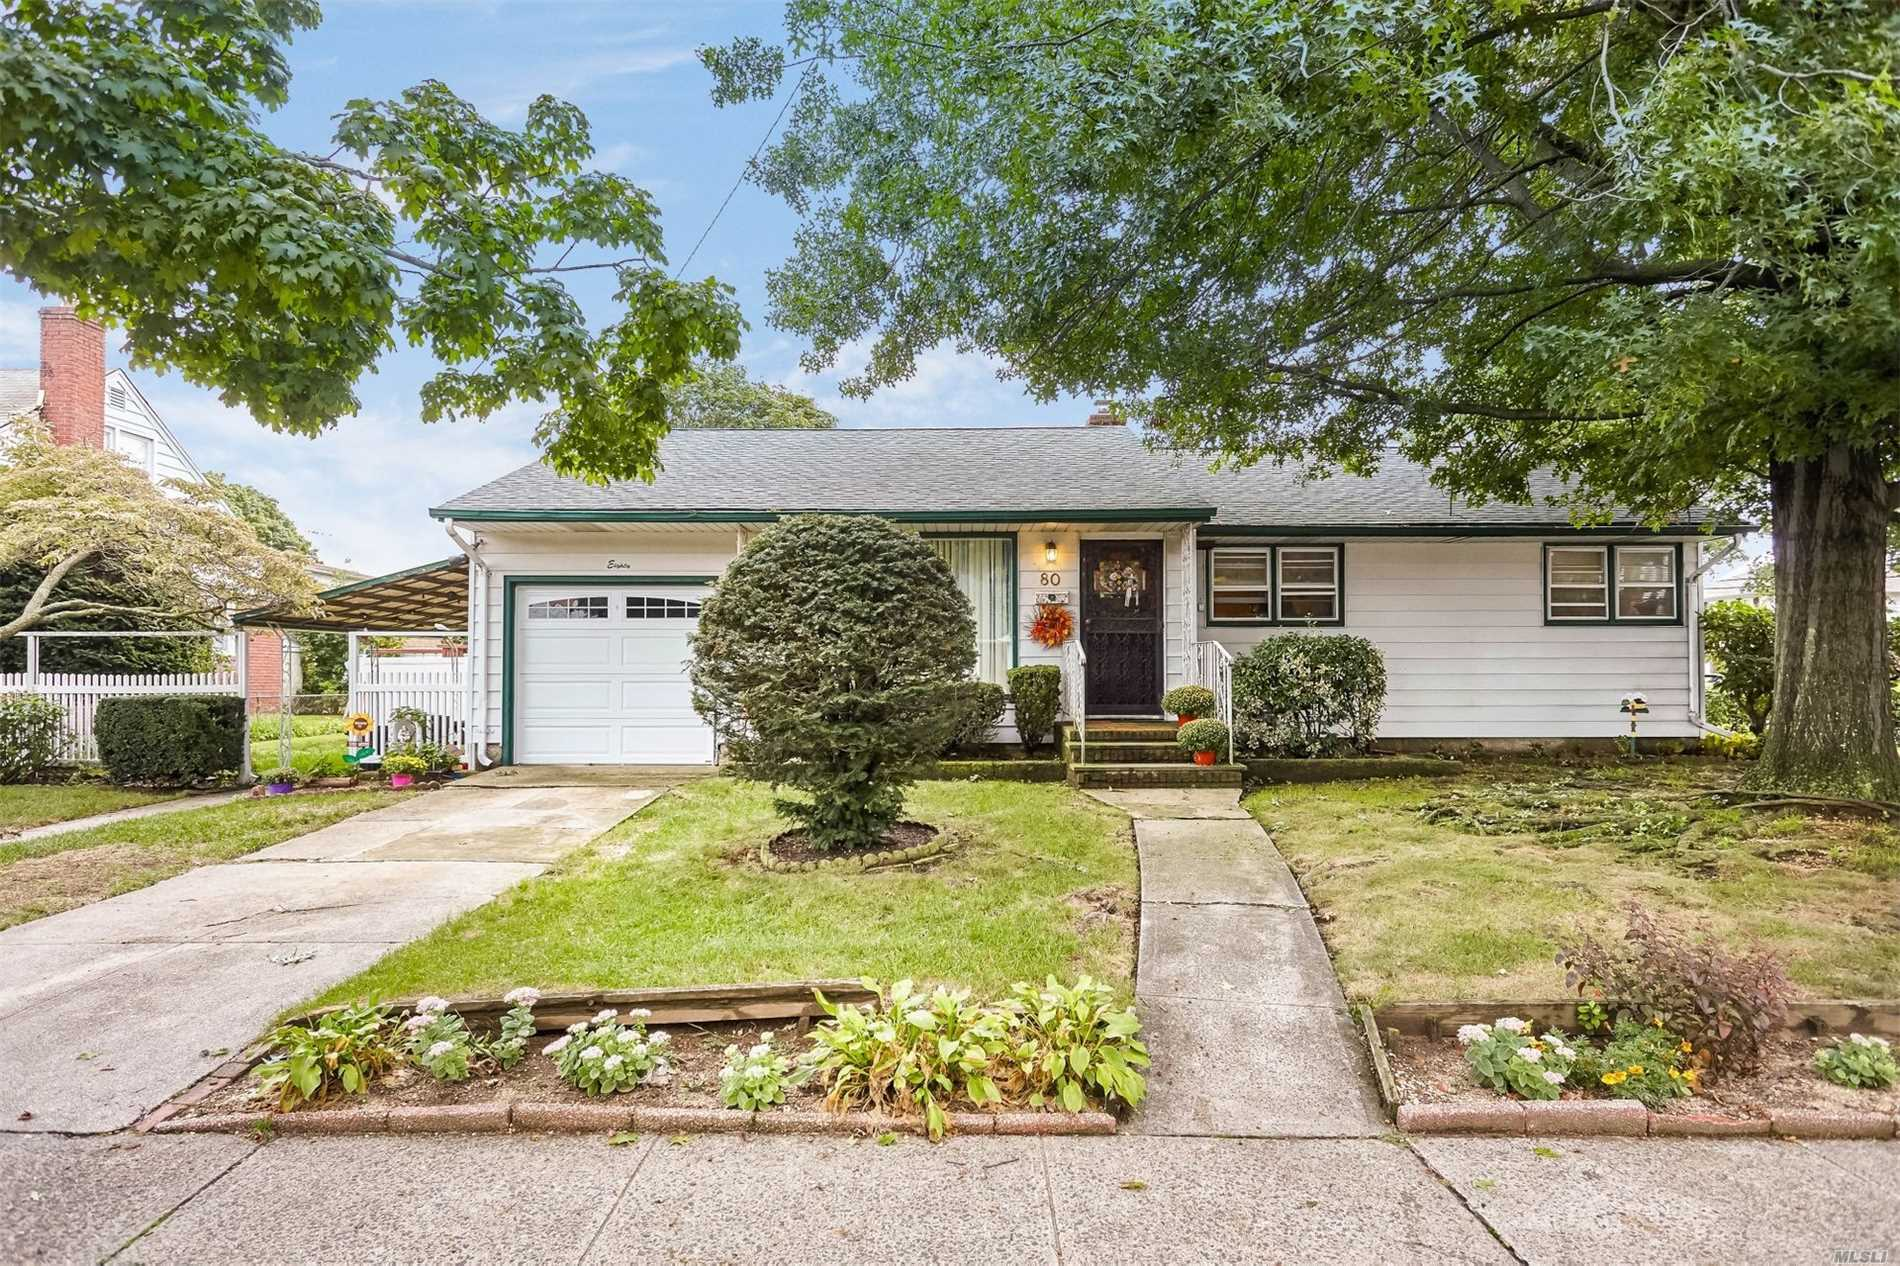 Prime Location Near Garden City Border, Mint Condition. North Of Hempstead Tpk Spacious 3 Br Ranch W Fdr And Eik And Lr. Easy Commute By Bus